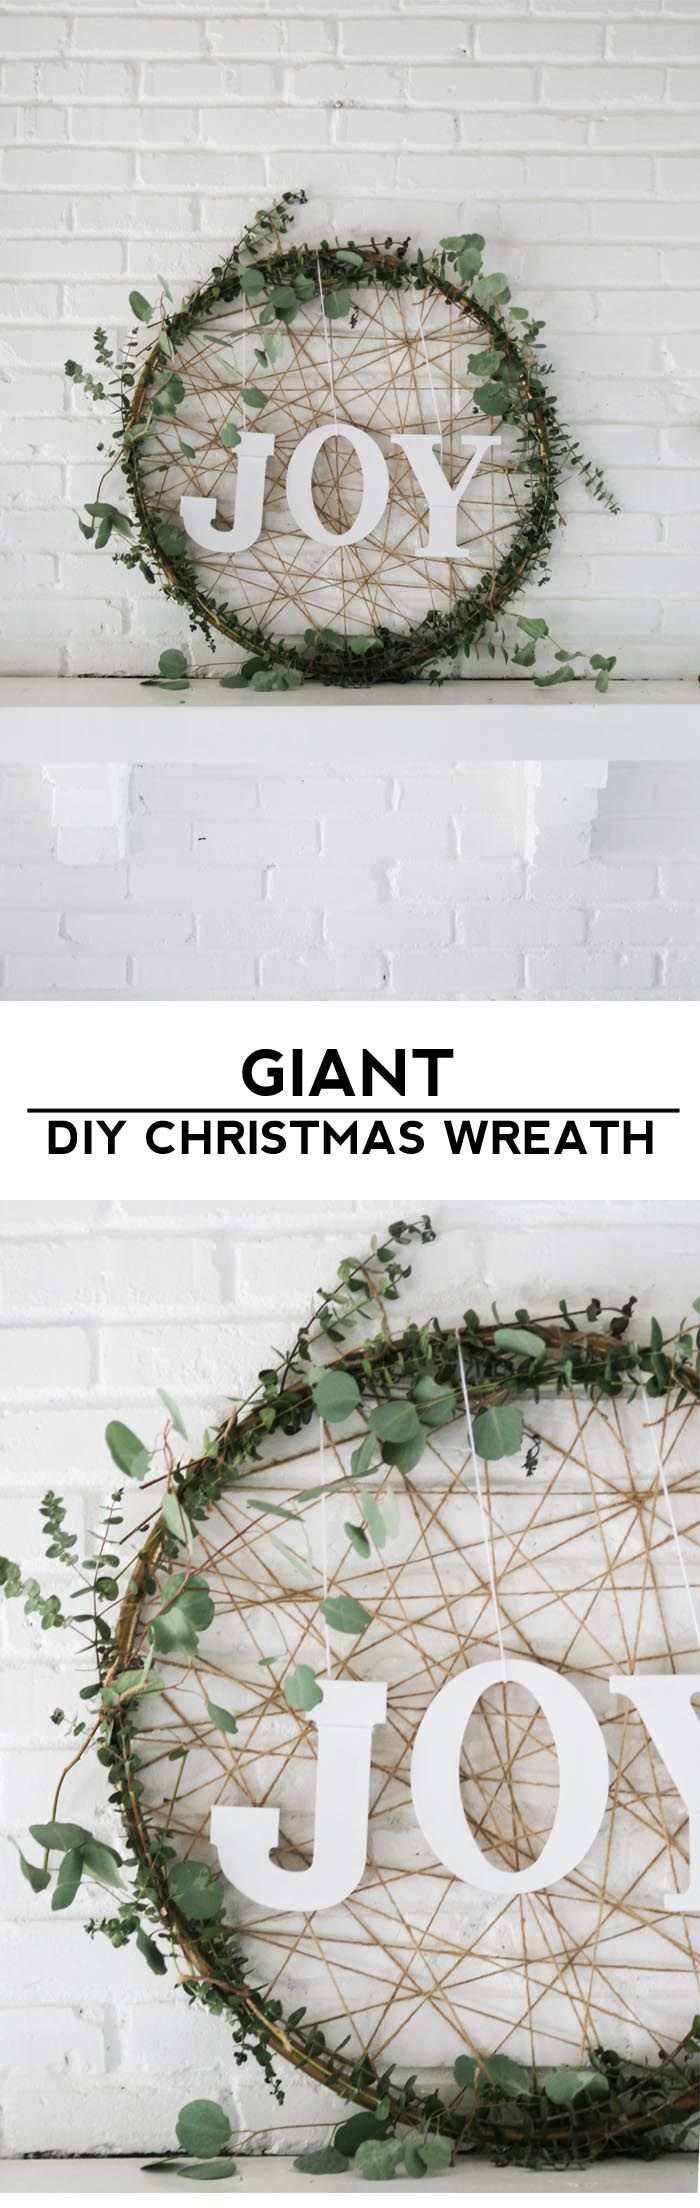 Make a giant Christmas wreath out of a hula hoop and eucalyptus for some rustic ...